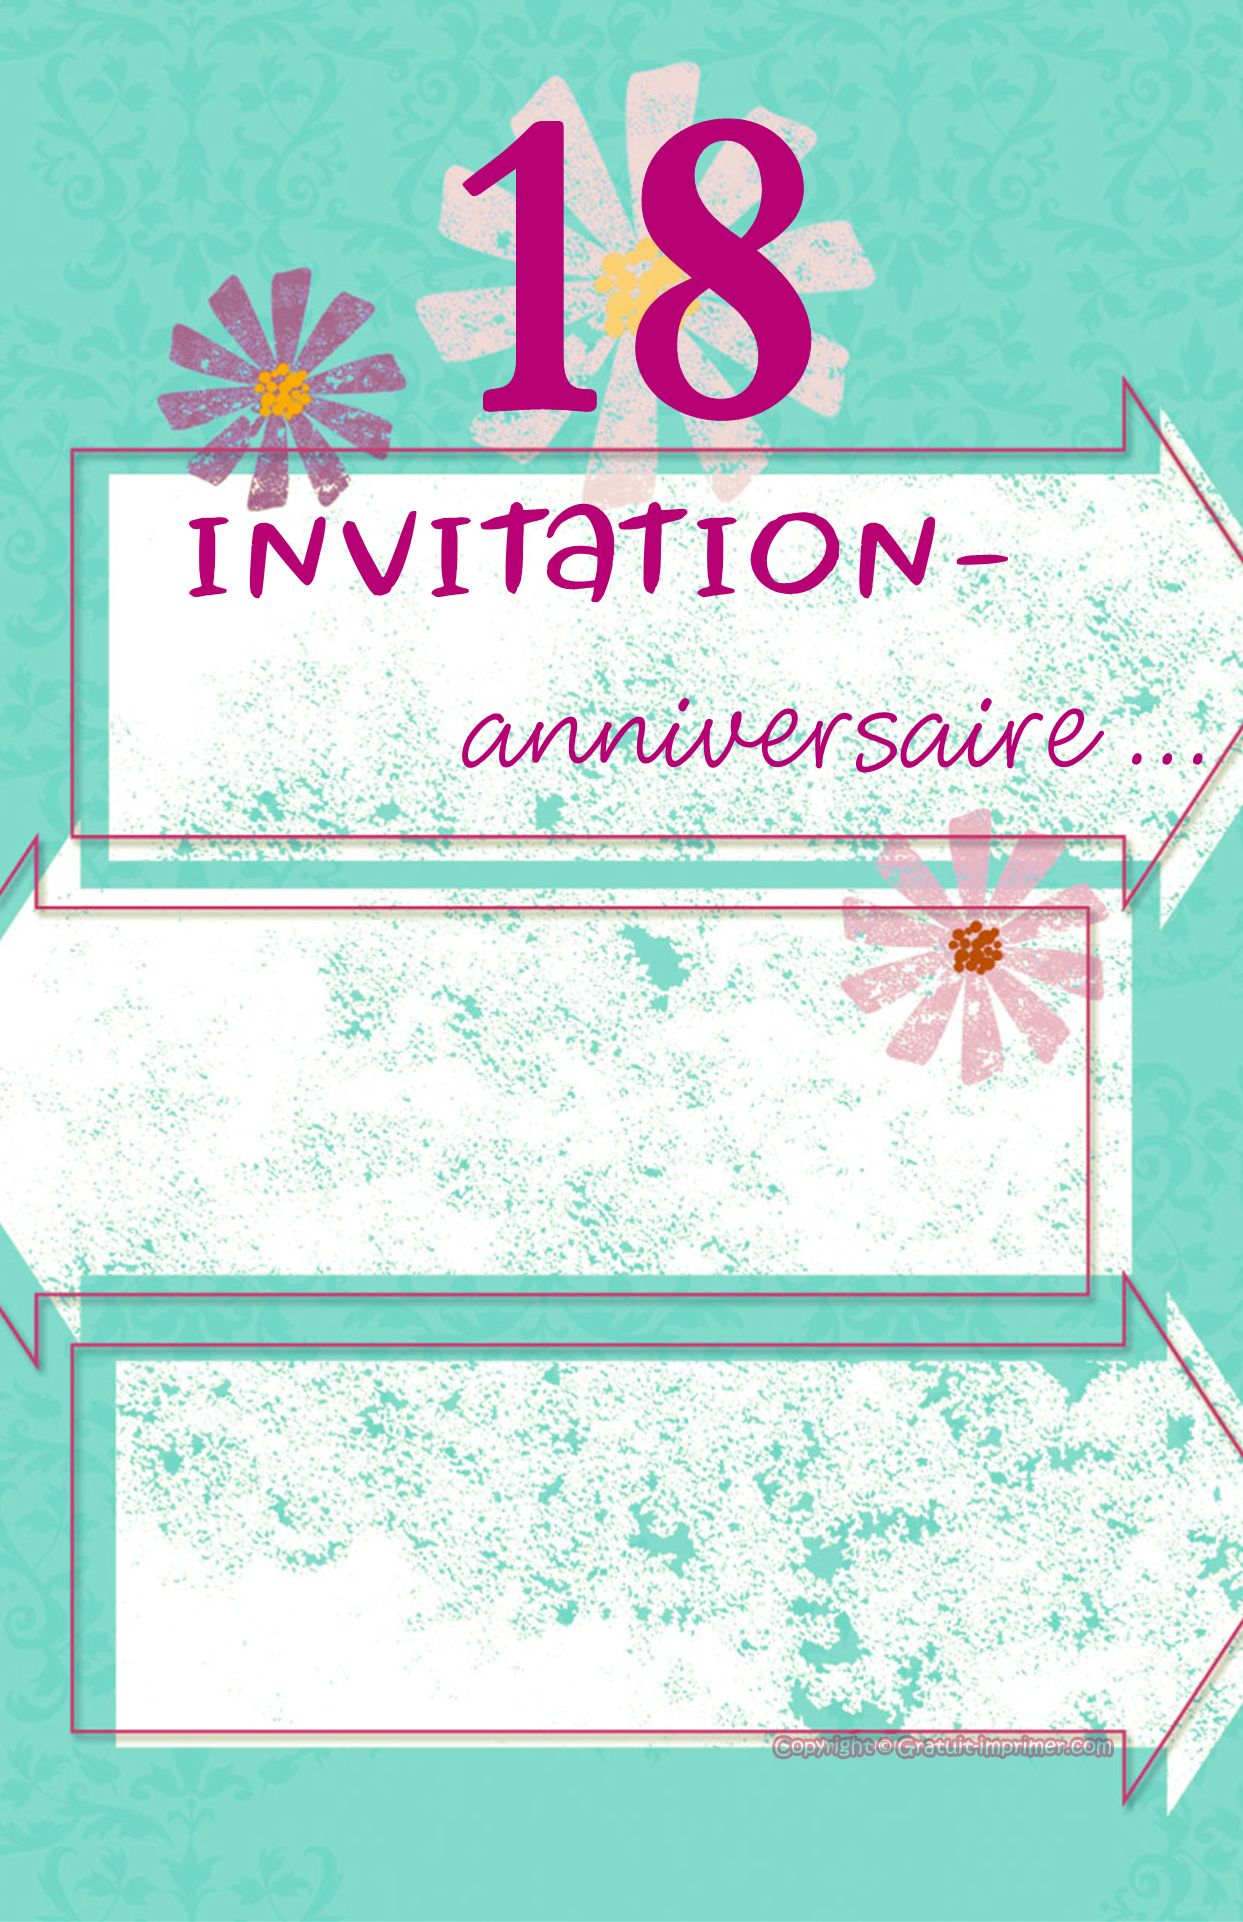 carte invitation anniversaire de 18 ans gratuite a imprimer pour fille invitations carte. Black Bedroom Furniture Sets. Home Design Ideas